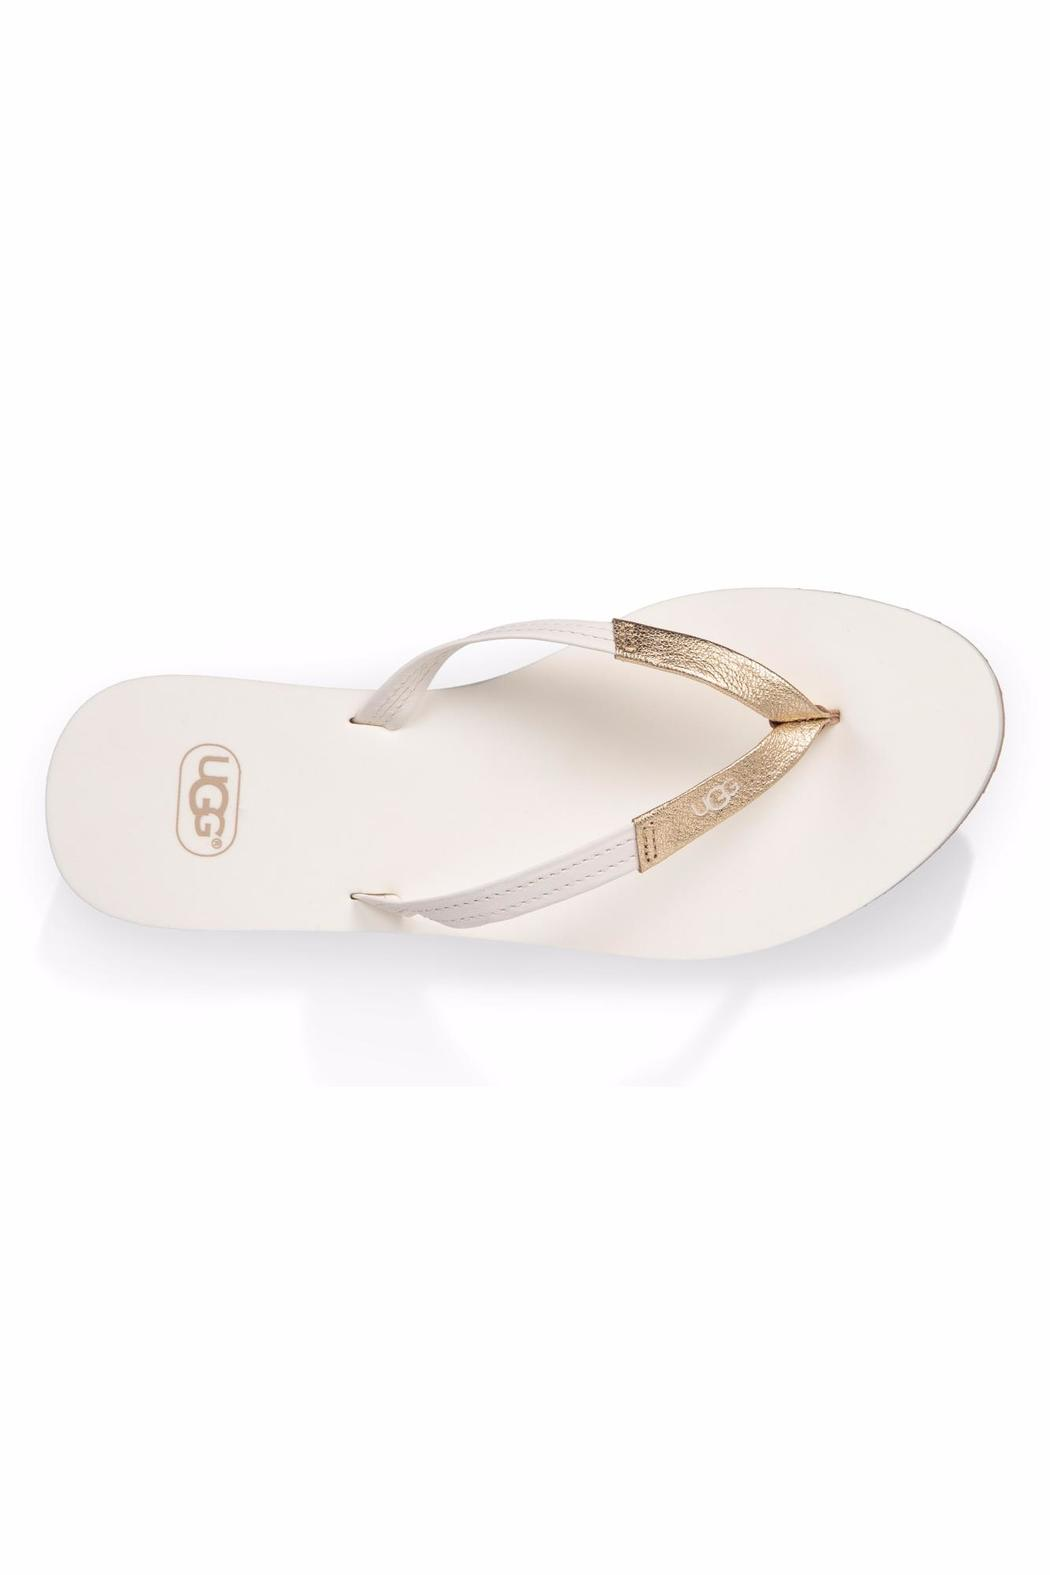 6eefd236560 UGG Australia Ugg Magnolia Flip Flop from California by Mattalou ...